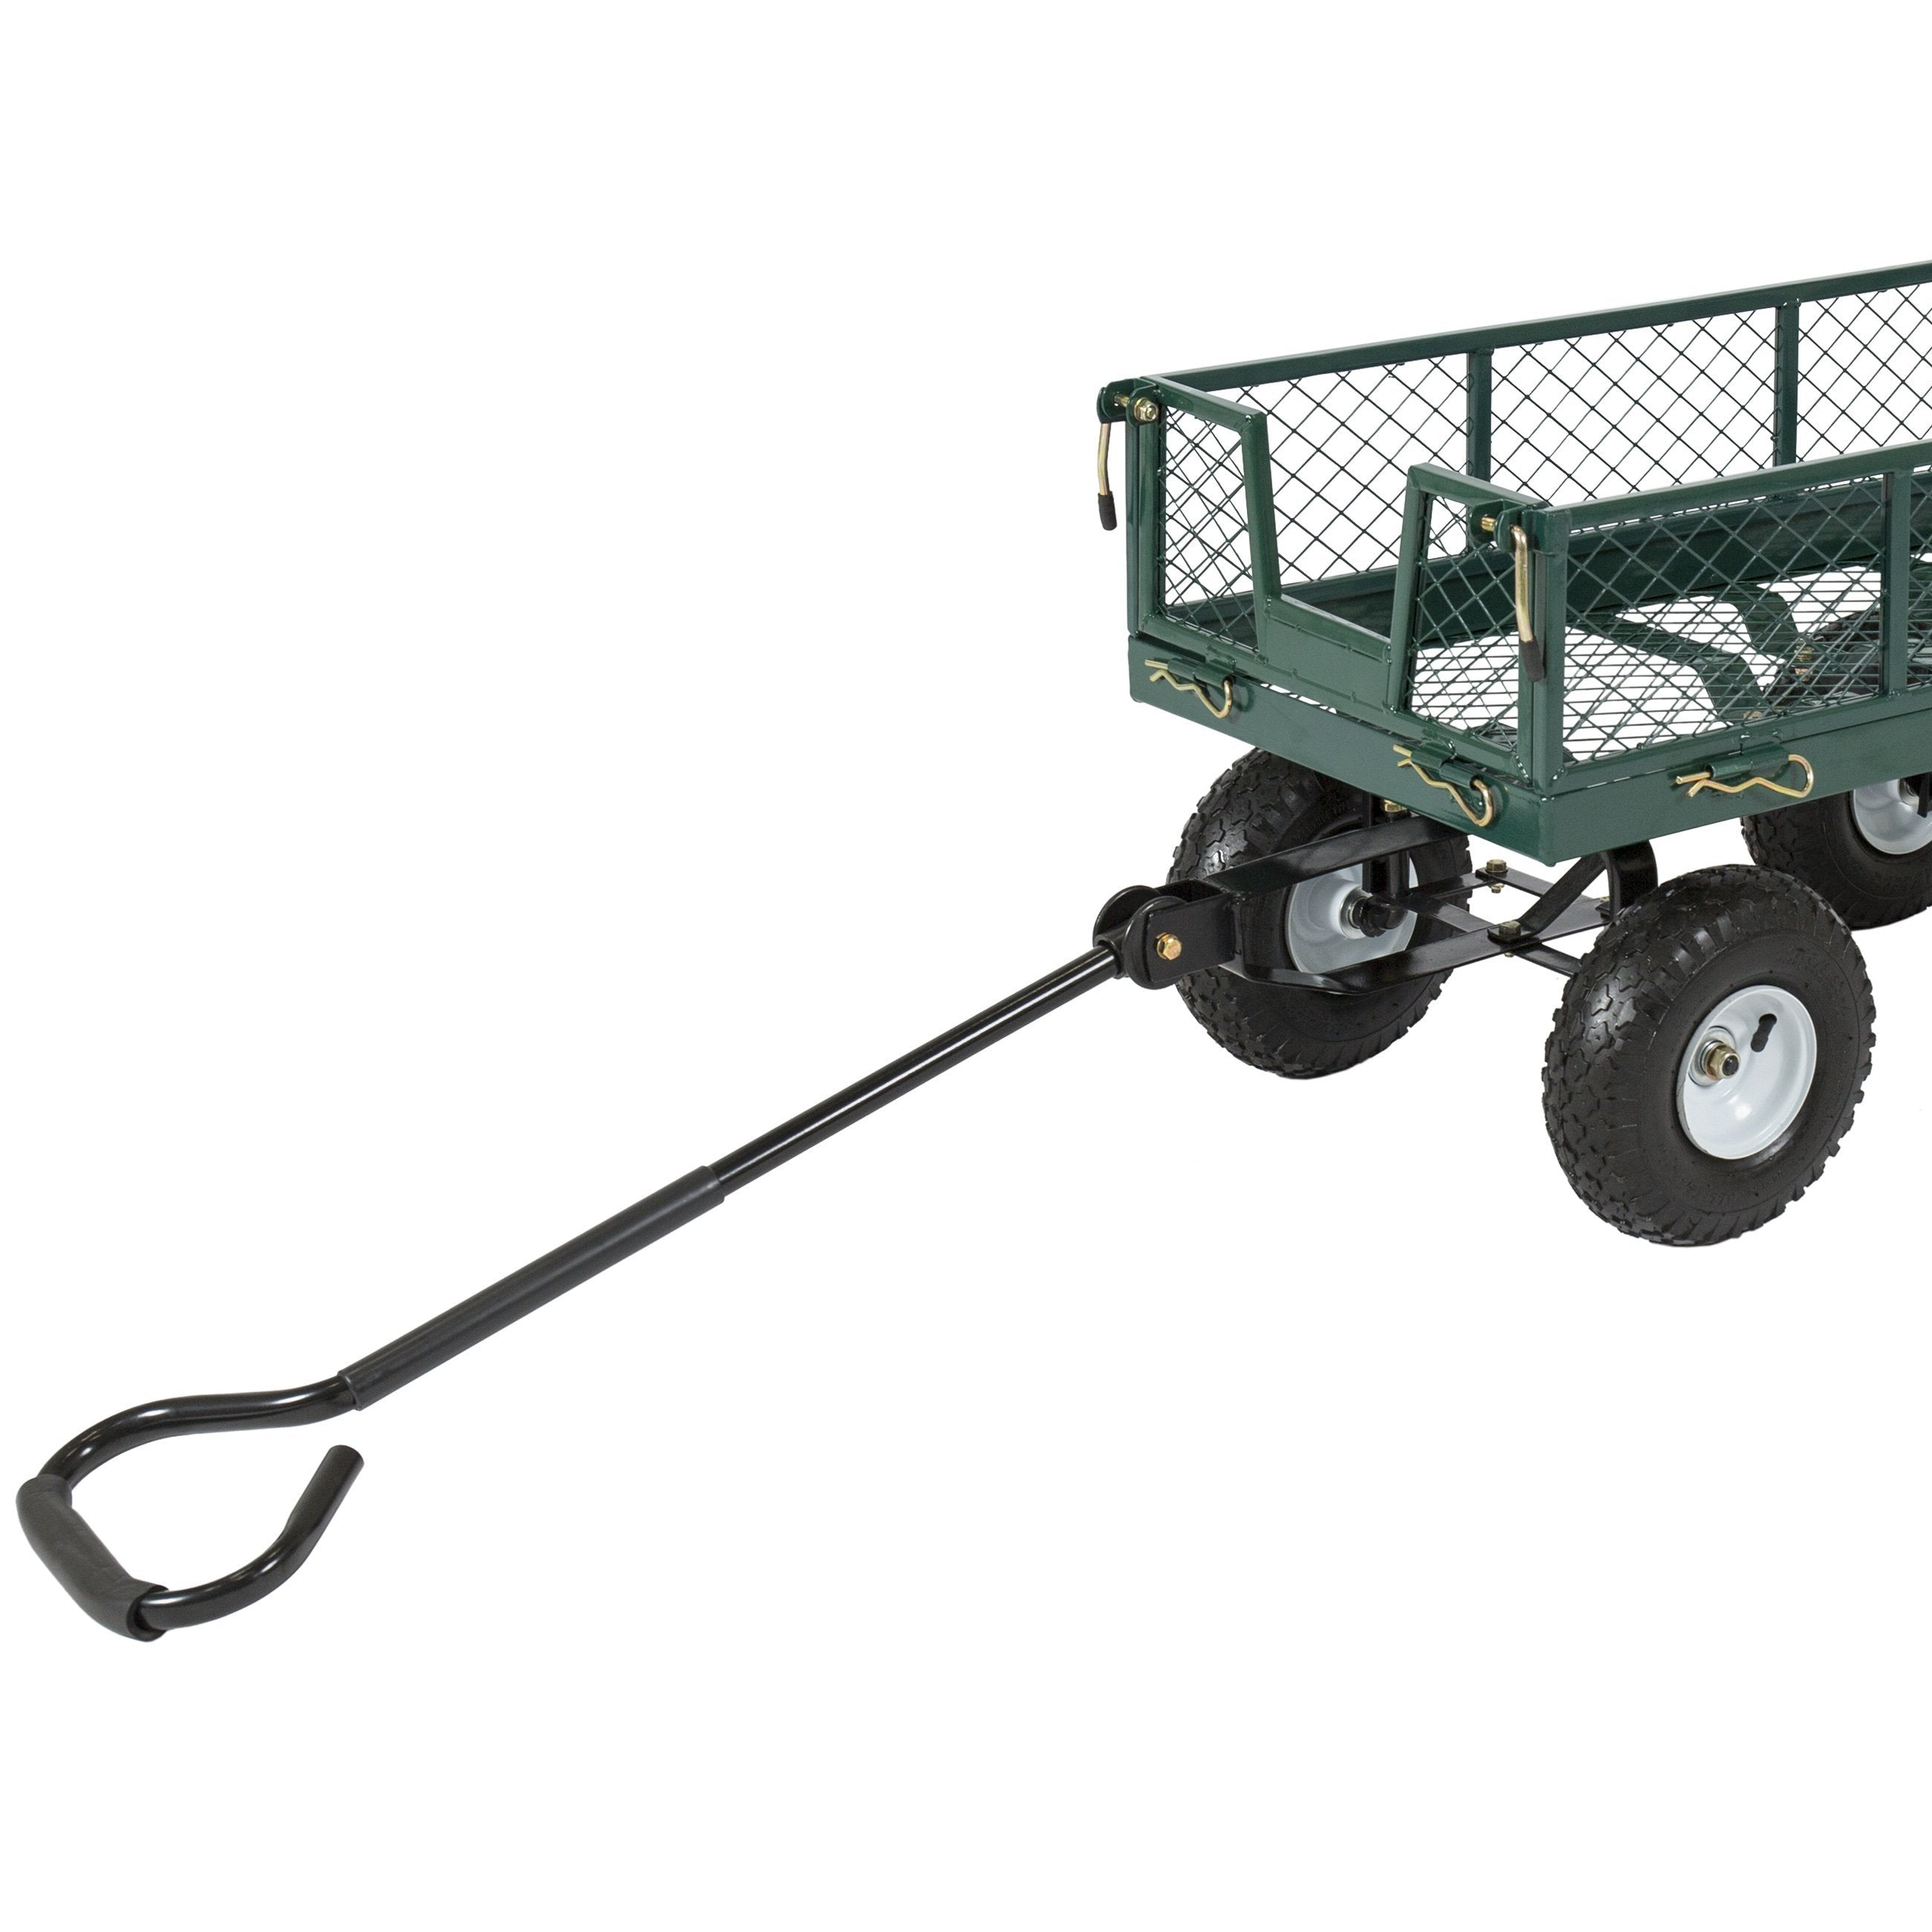 Steel Garden Utility Cart Wagon w/ 400lb Capacity, Removable Sides, Handle